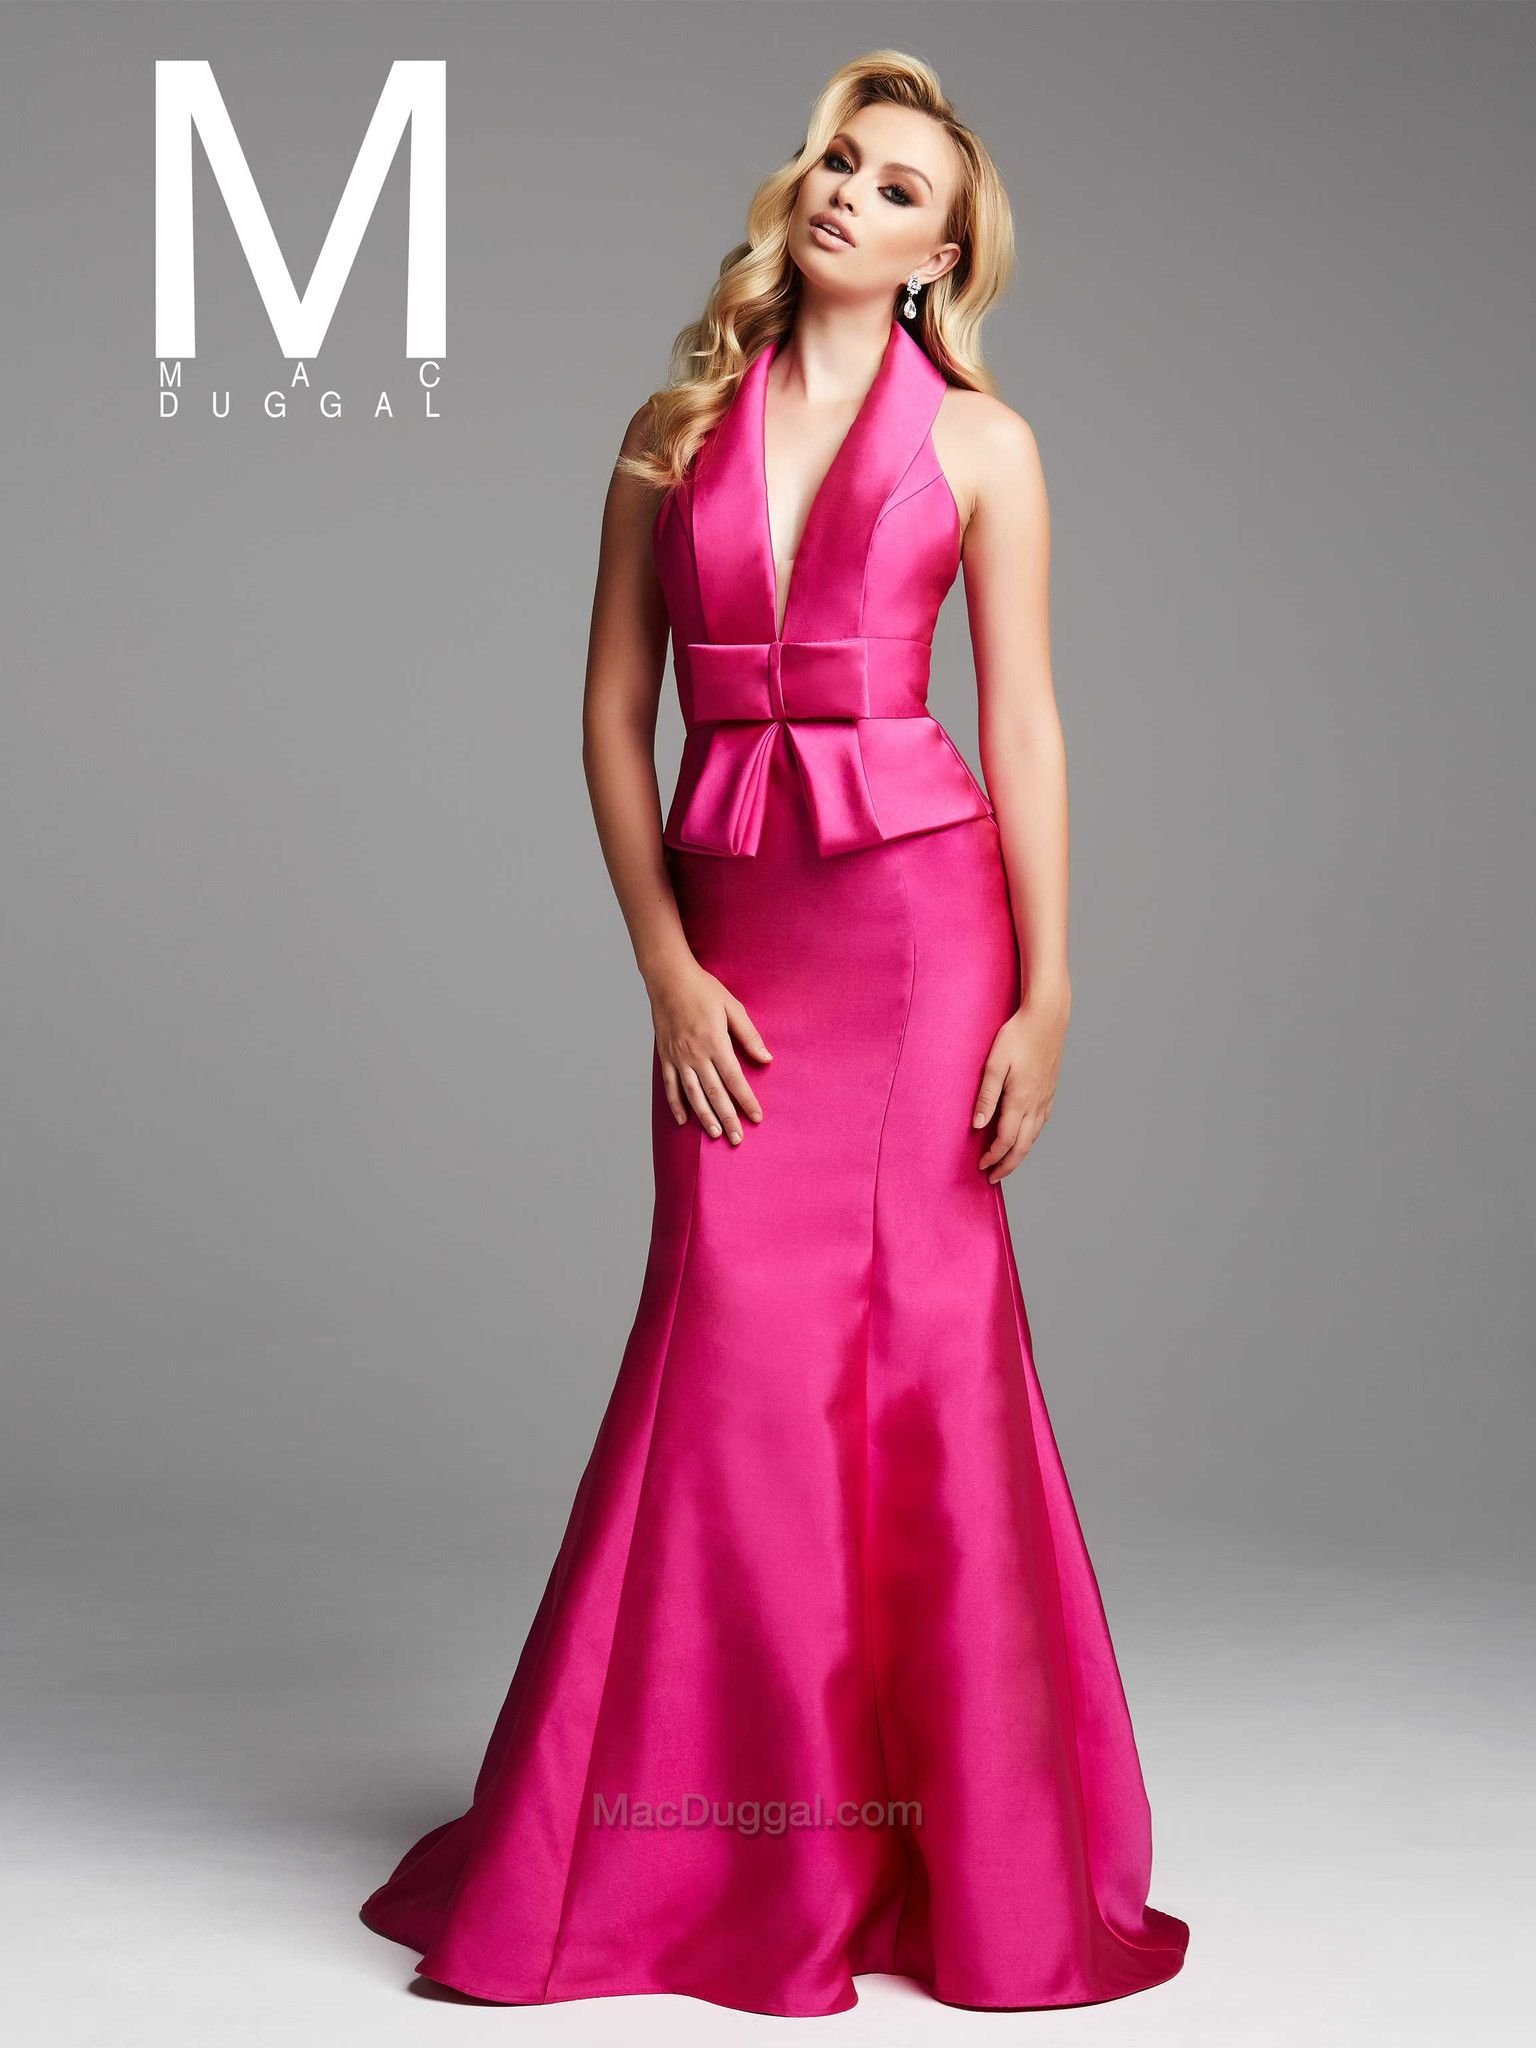 Mac duggal macs pageants and gowns